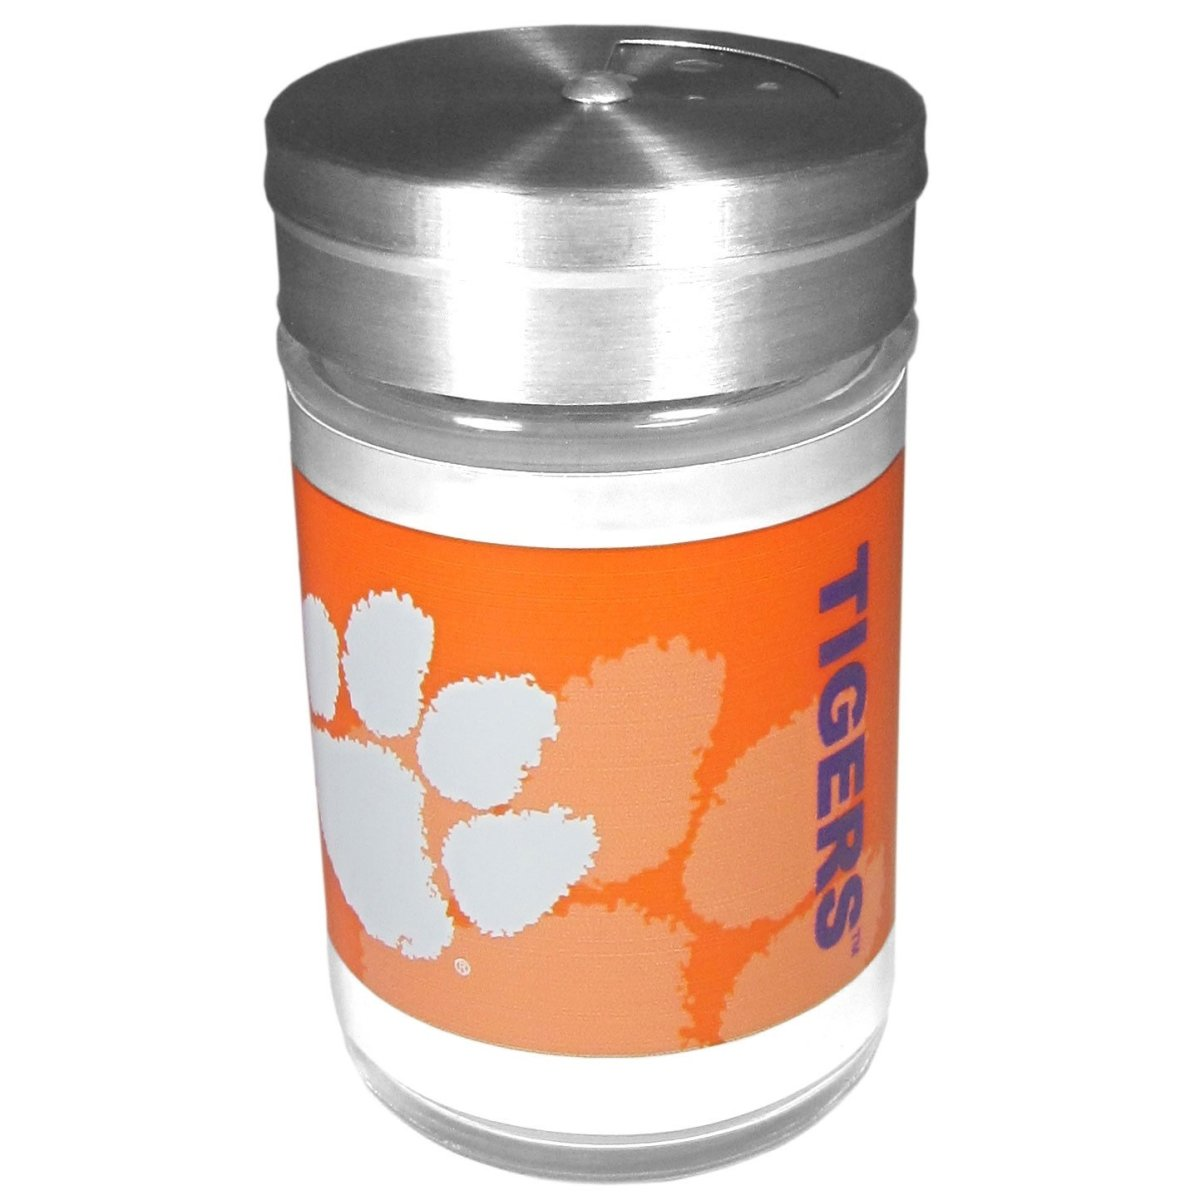 Clemson Tigers Tailgater Season Shaker - Mr. Knickerbocker